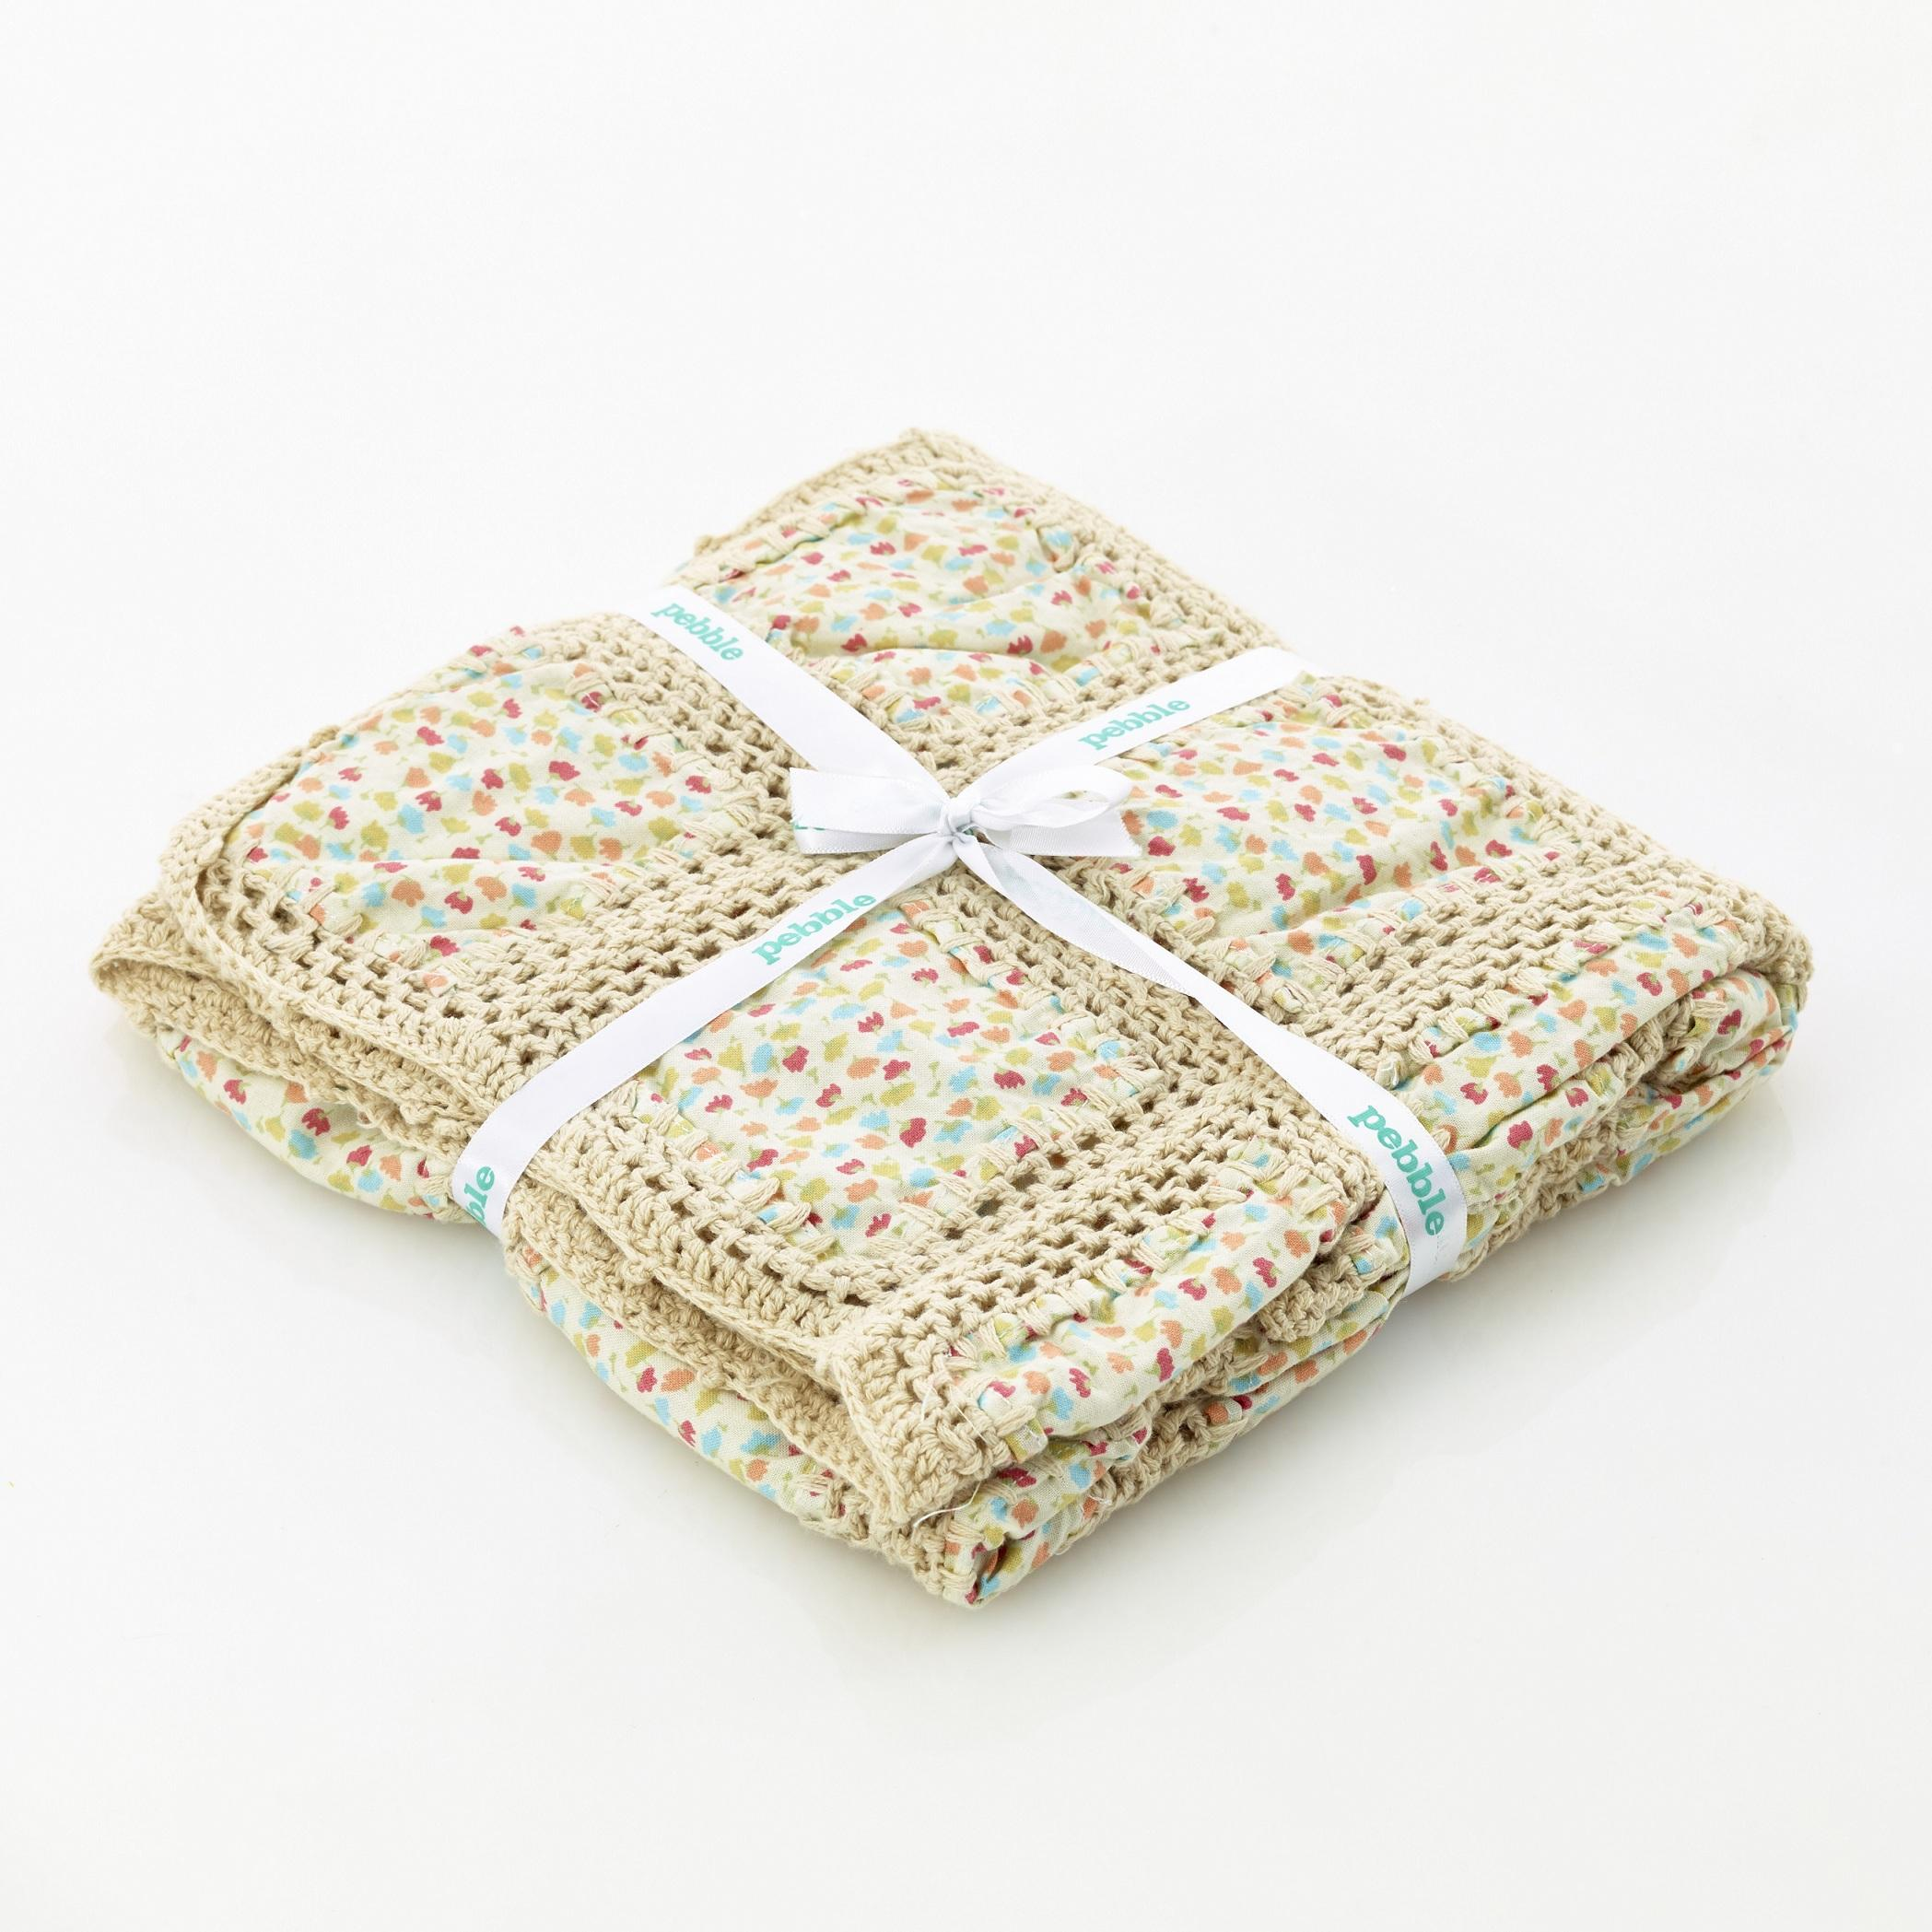 fair trade cotton baby blanket